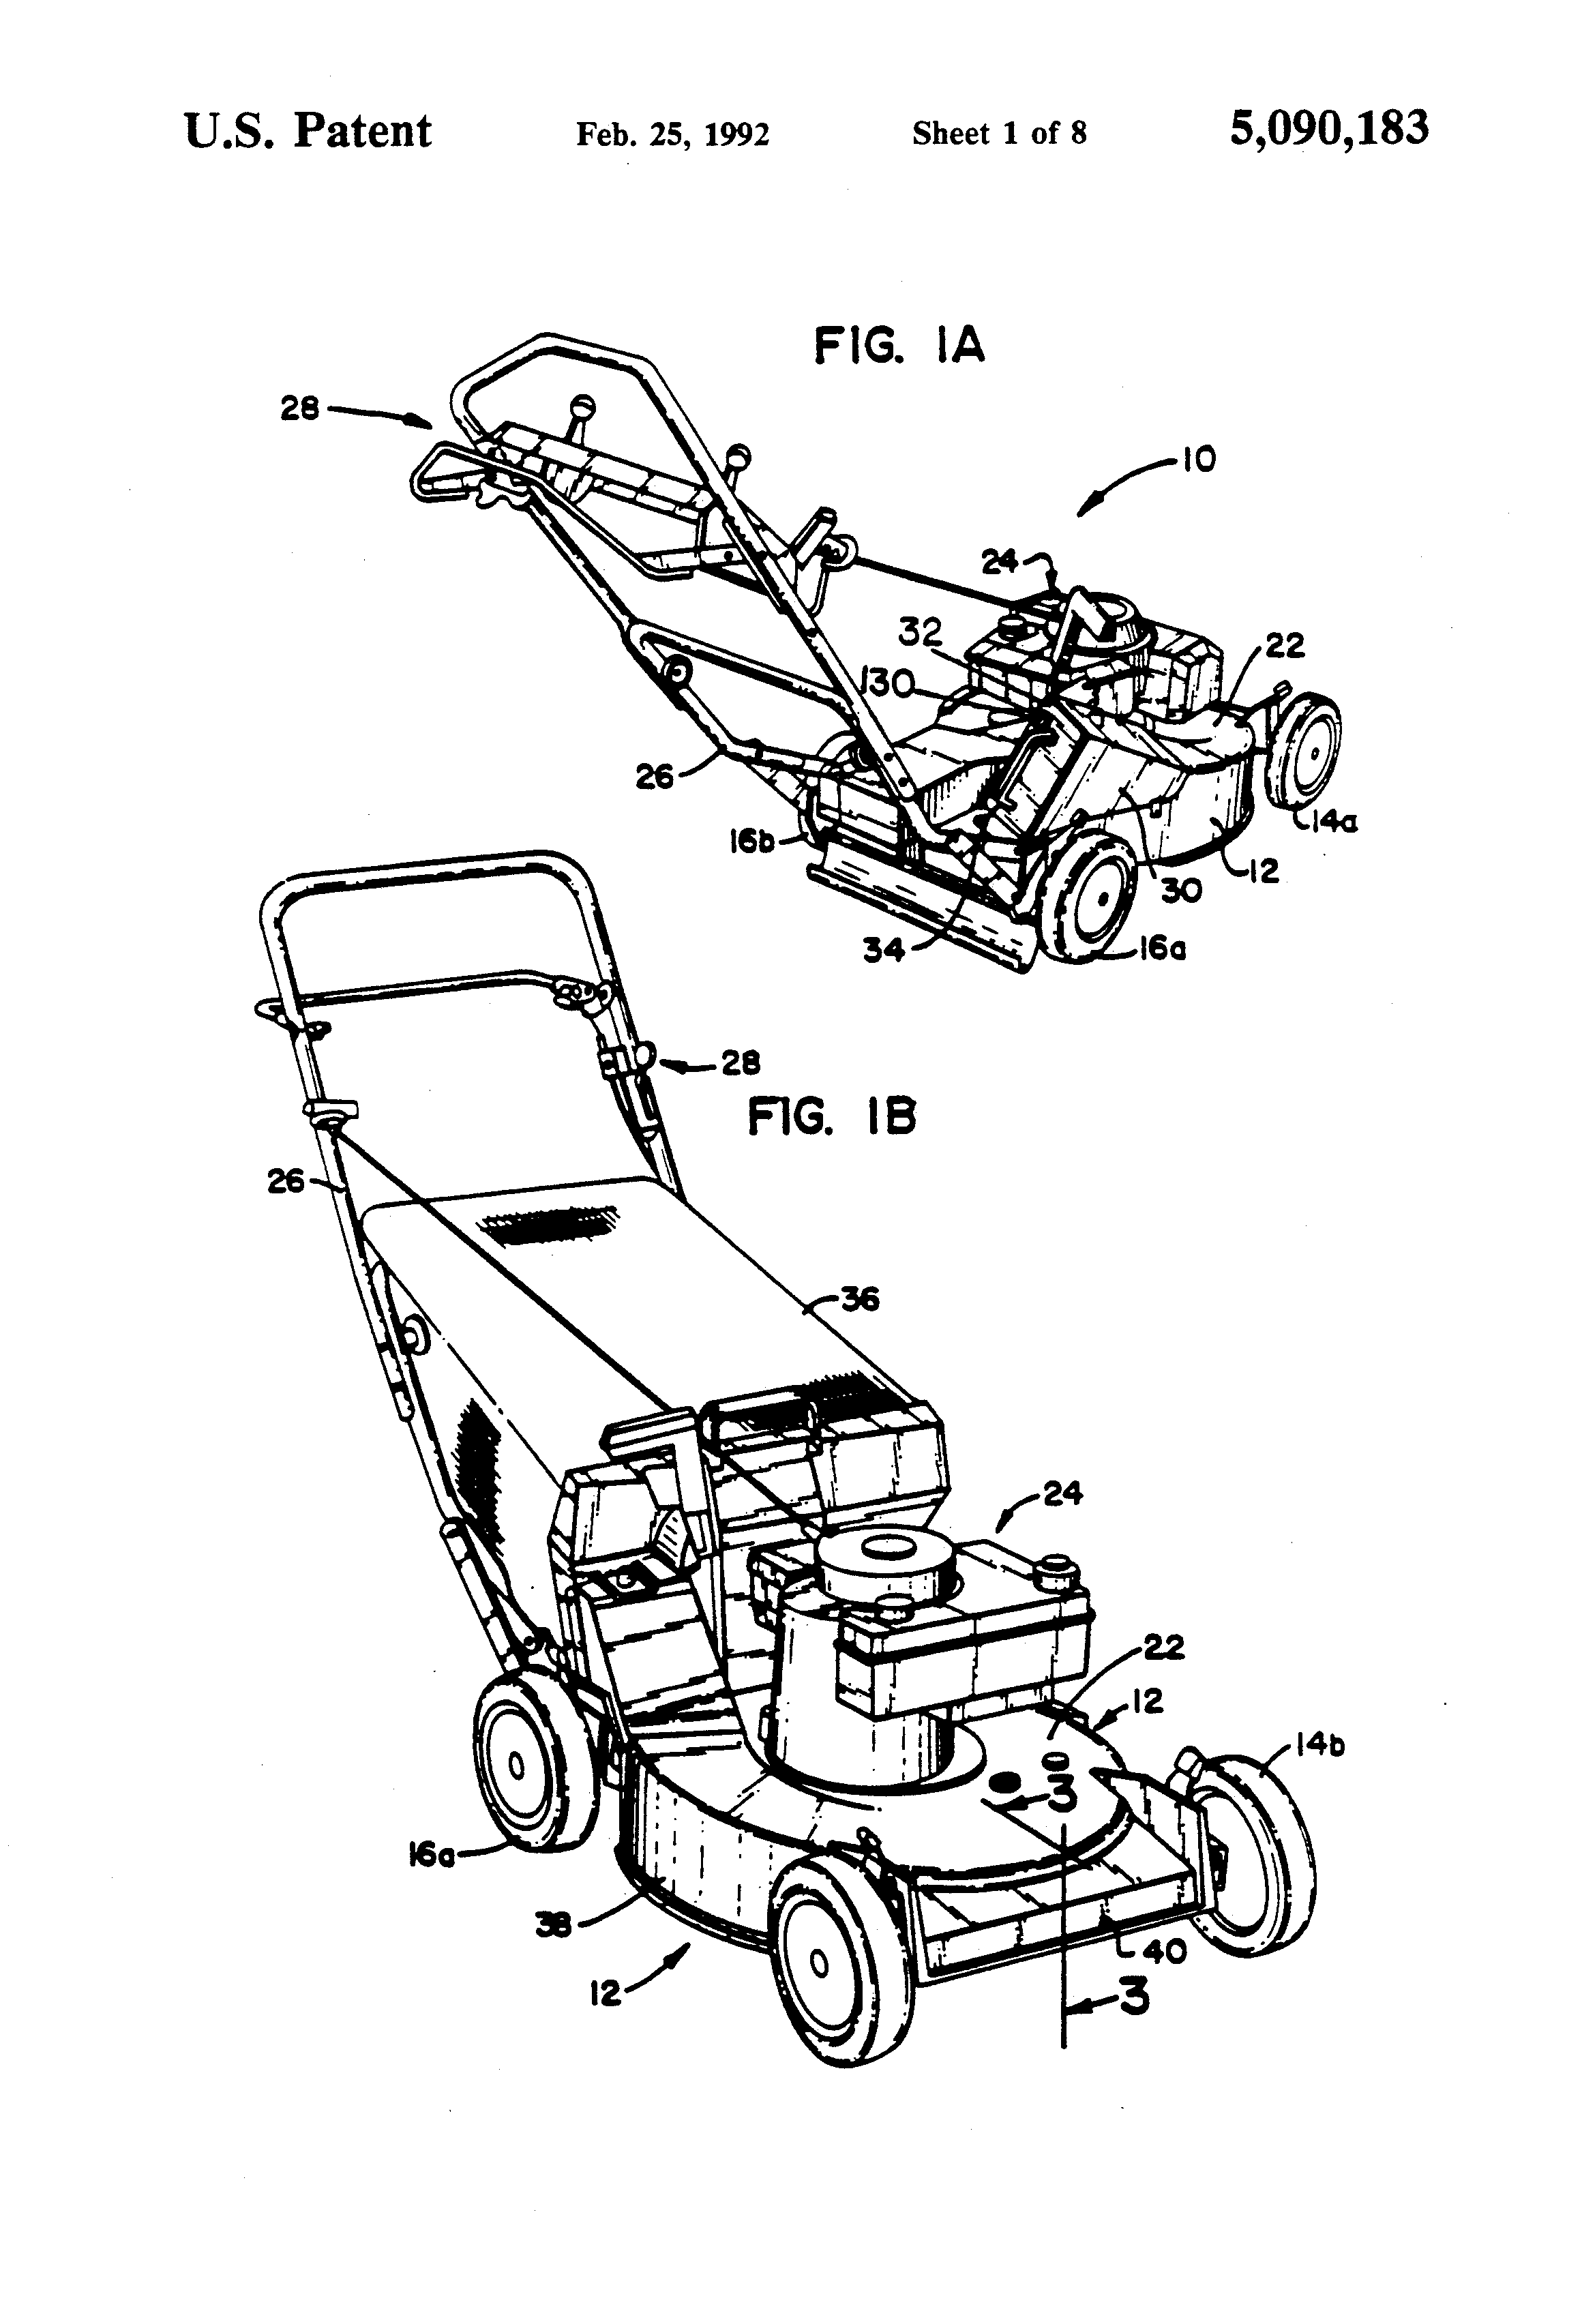 lawnmower drawing. patent drawing lawnmower